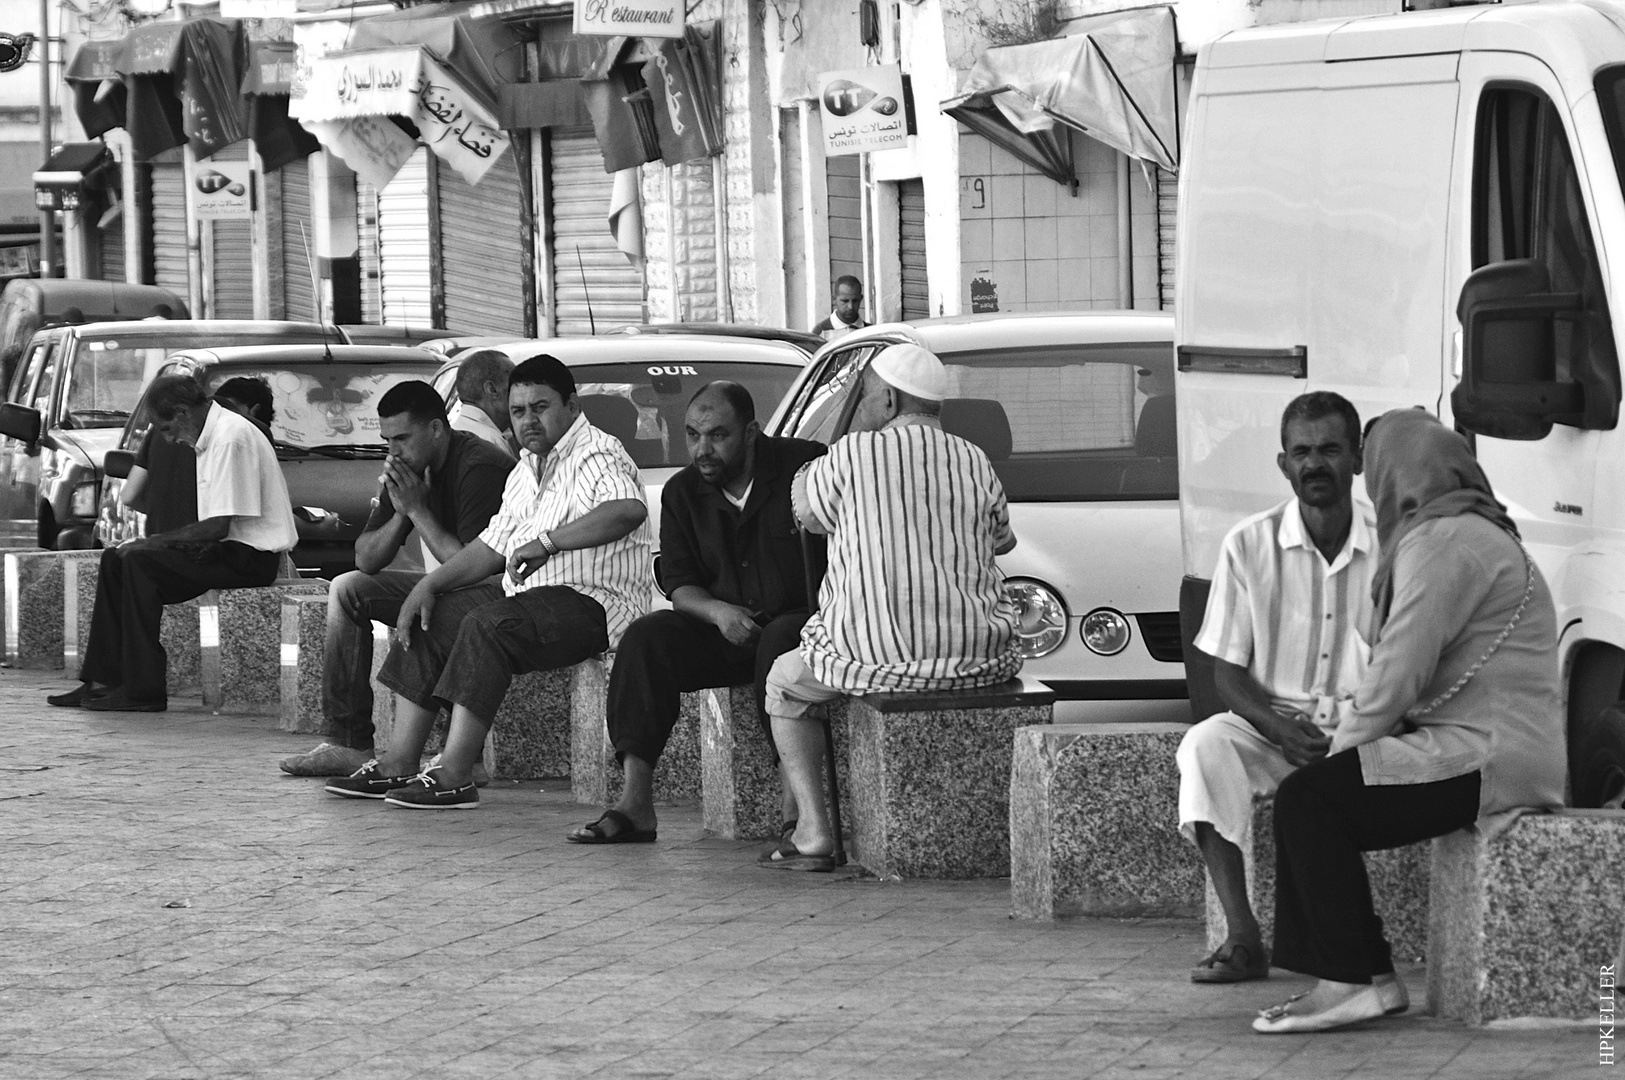 Some days ago in Tunis, ...waiting for Godot II.